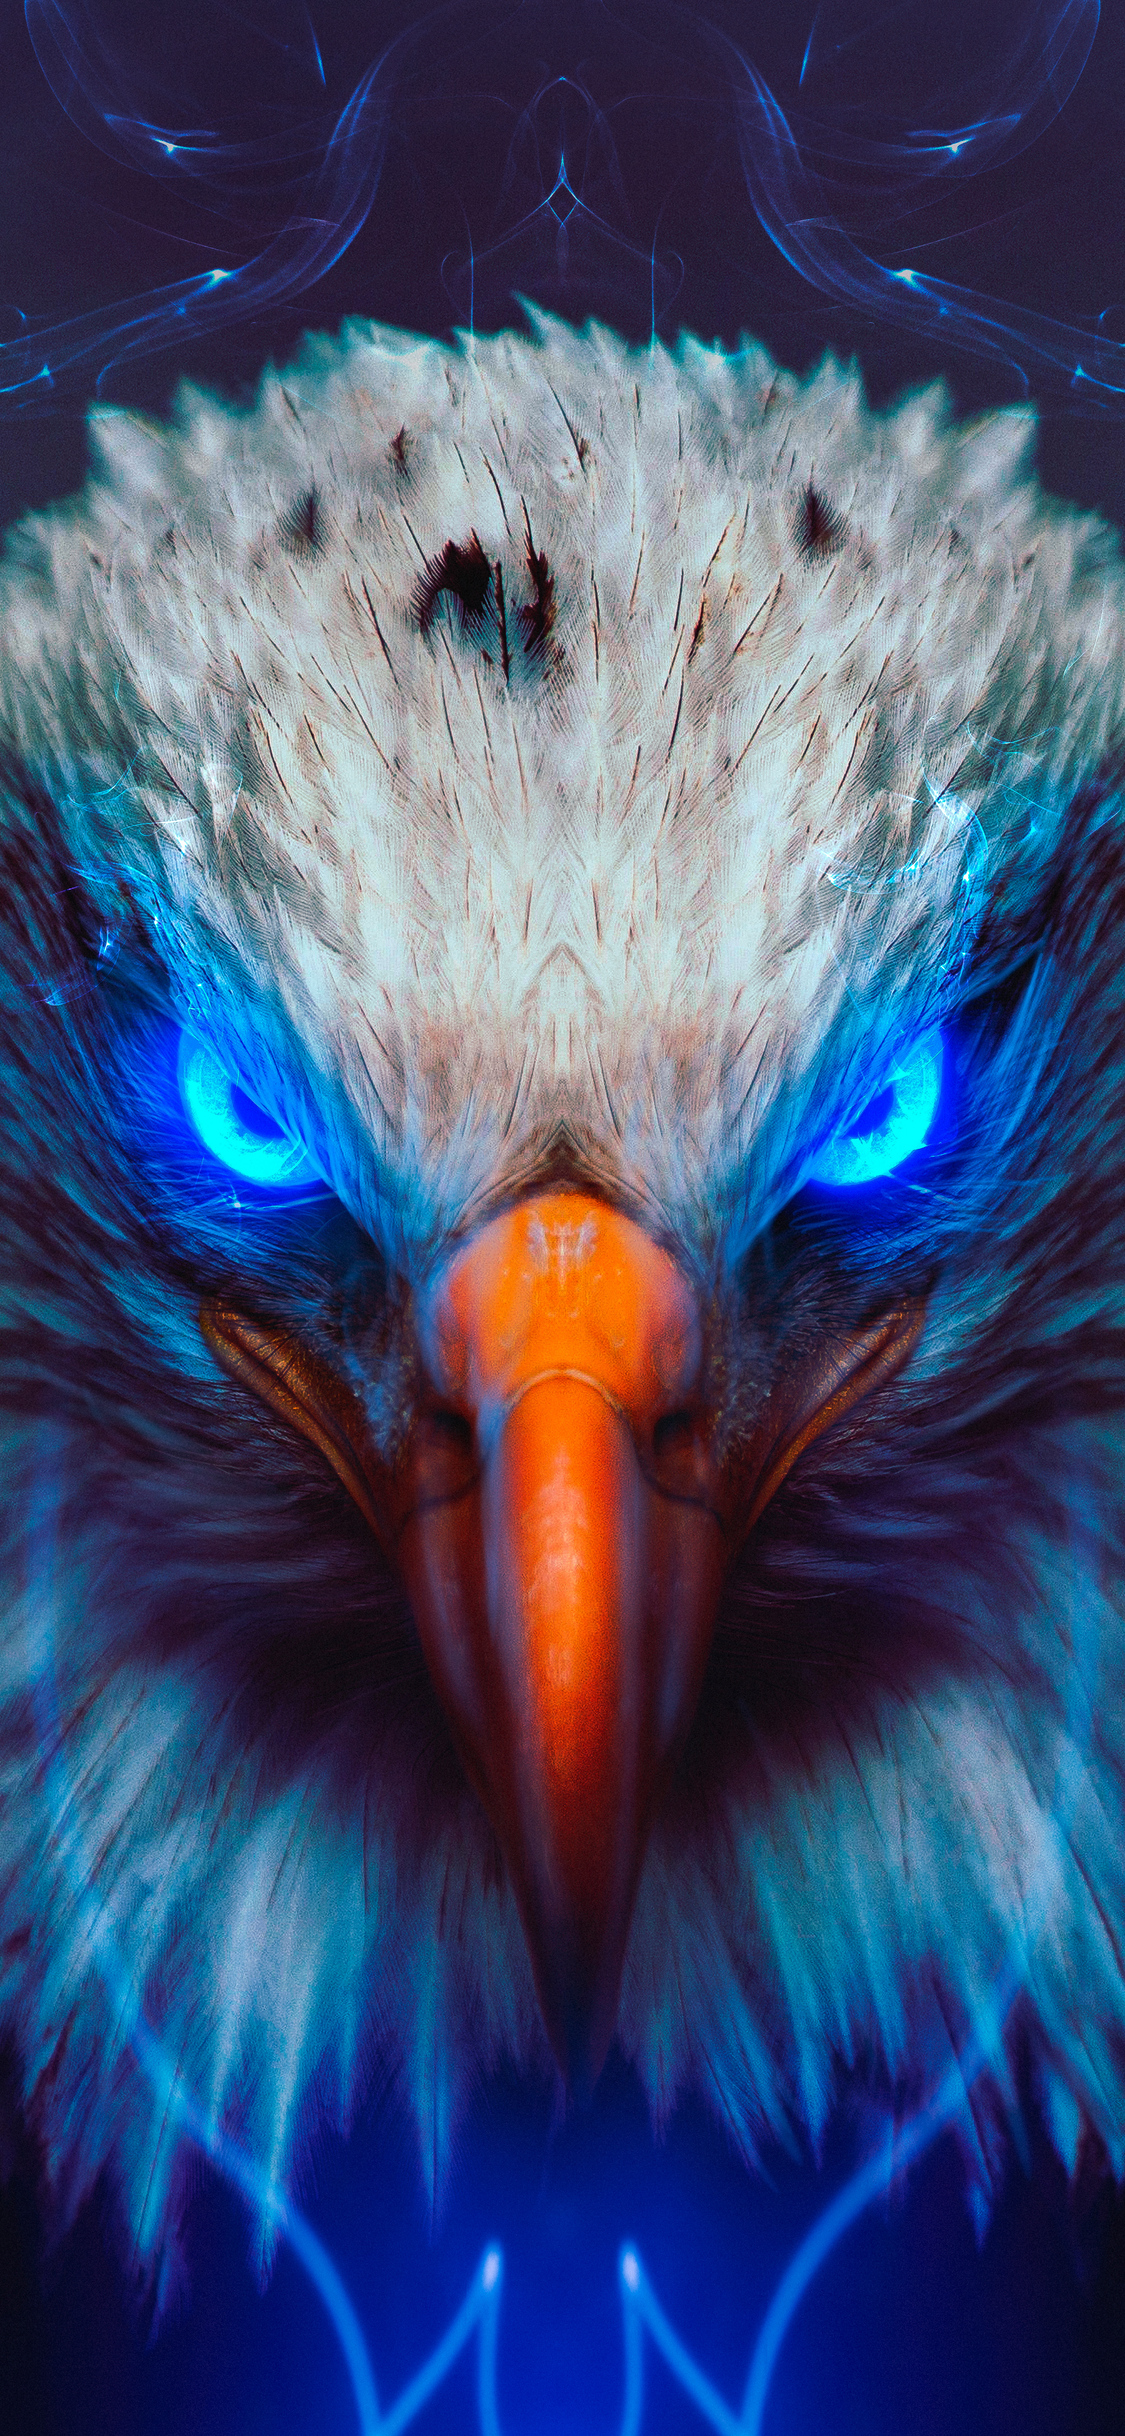 1125x2436 Eagle Eye Iphone Xs Iphone 10 Iphone X Hd 4k Wallpapers Images Backgrounds Photos And Pictures